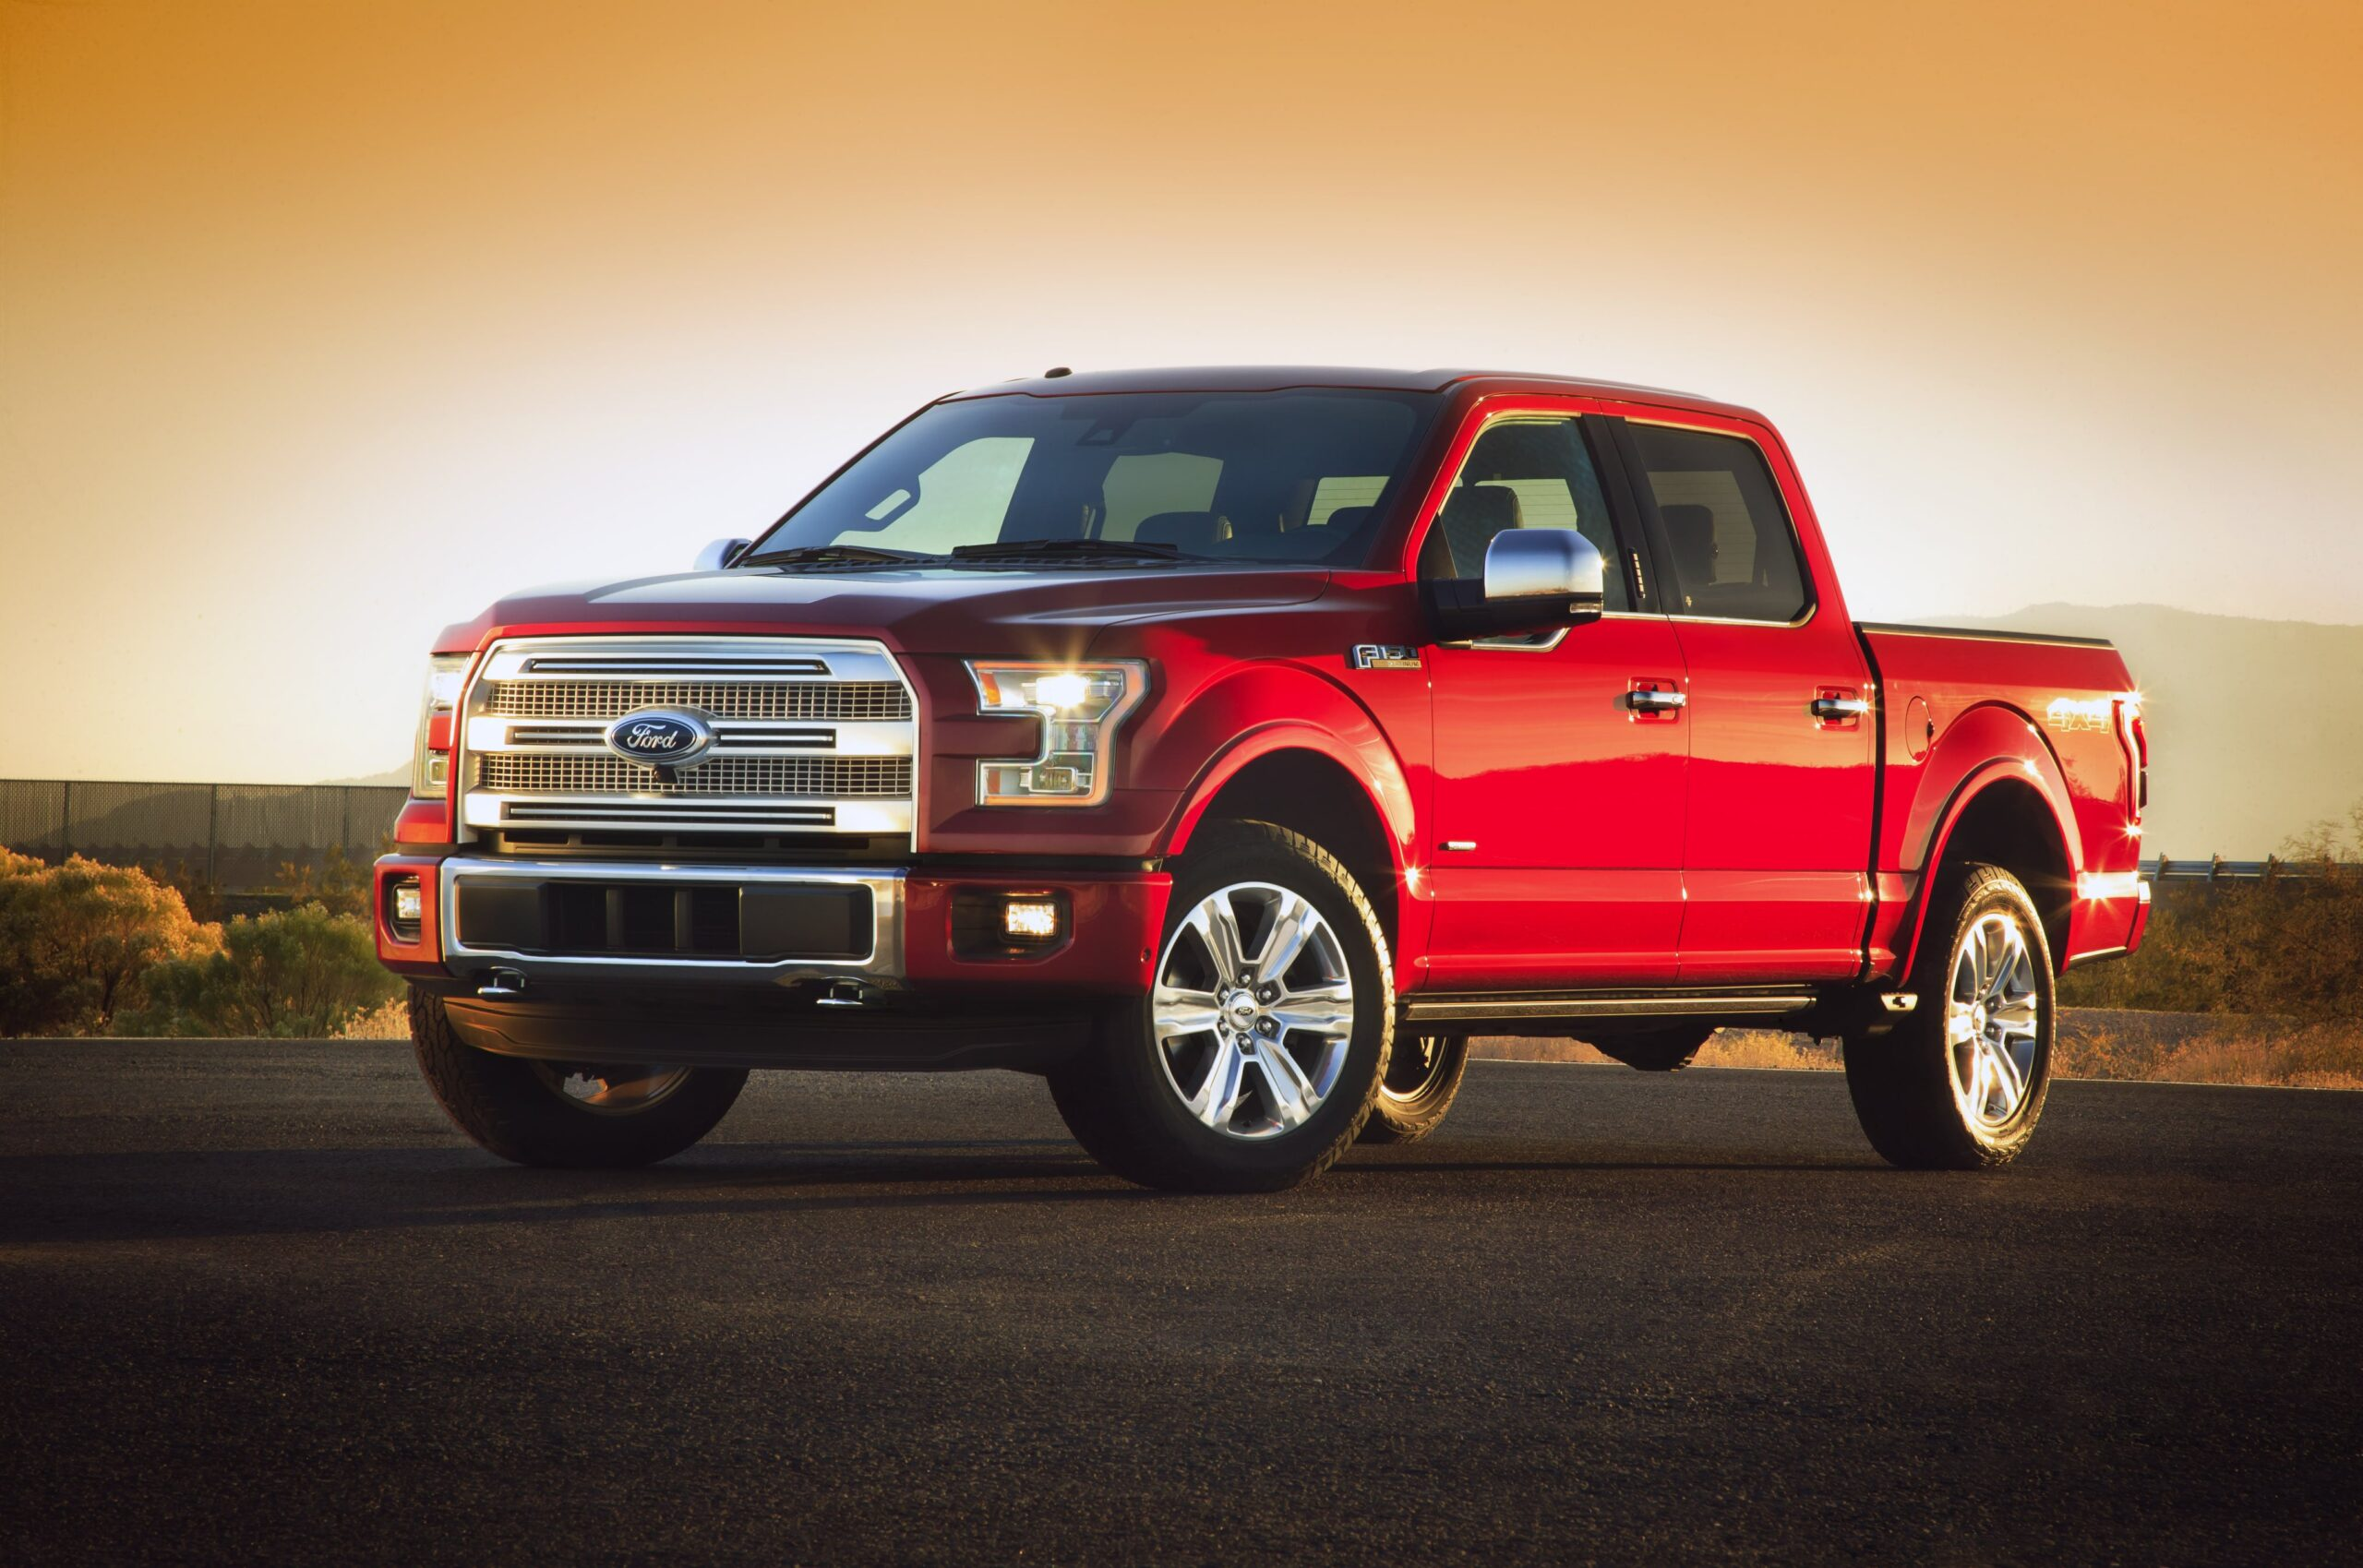 Best Tuner for Ford F150 3.5 Ecoboost